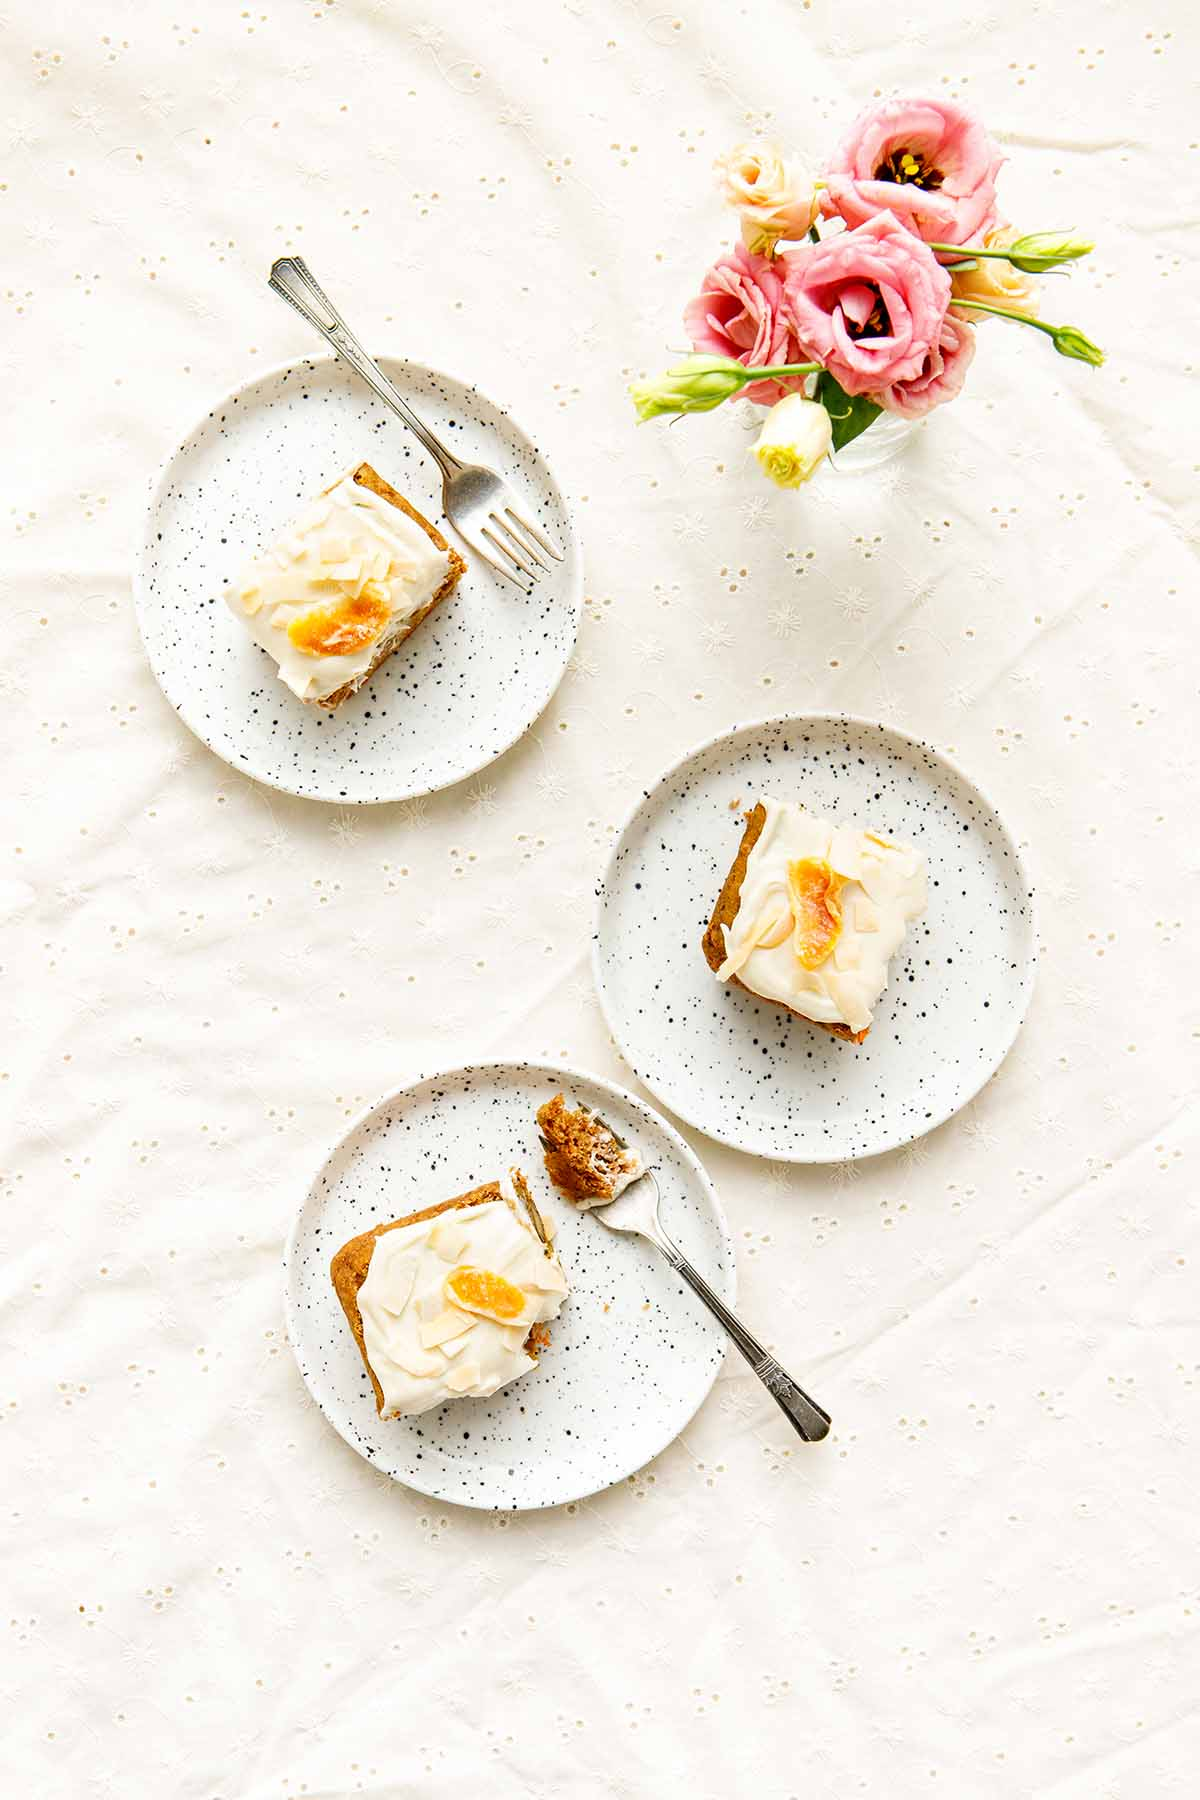 Iced squares of cake on small plates.